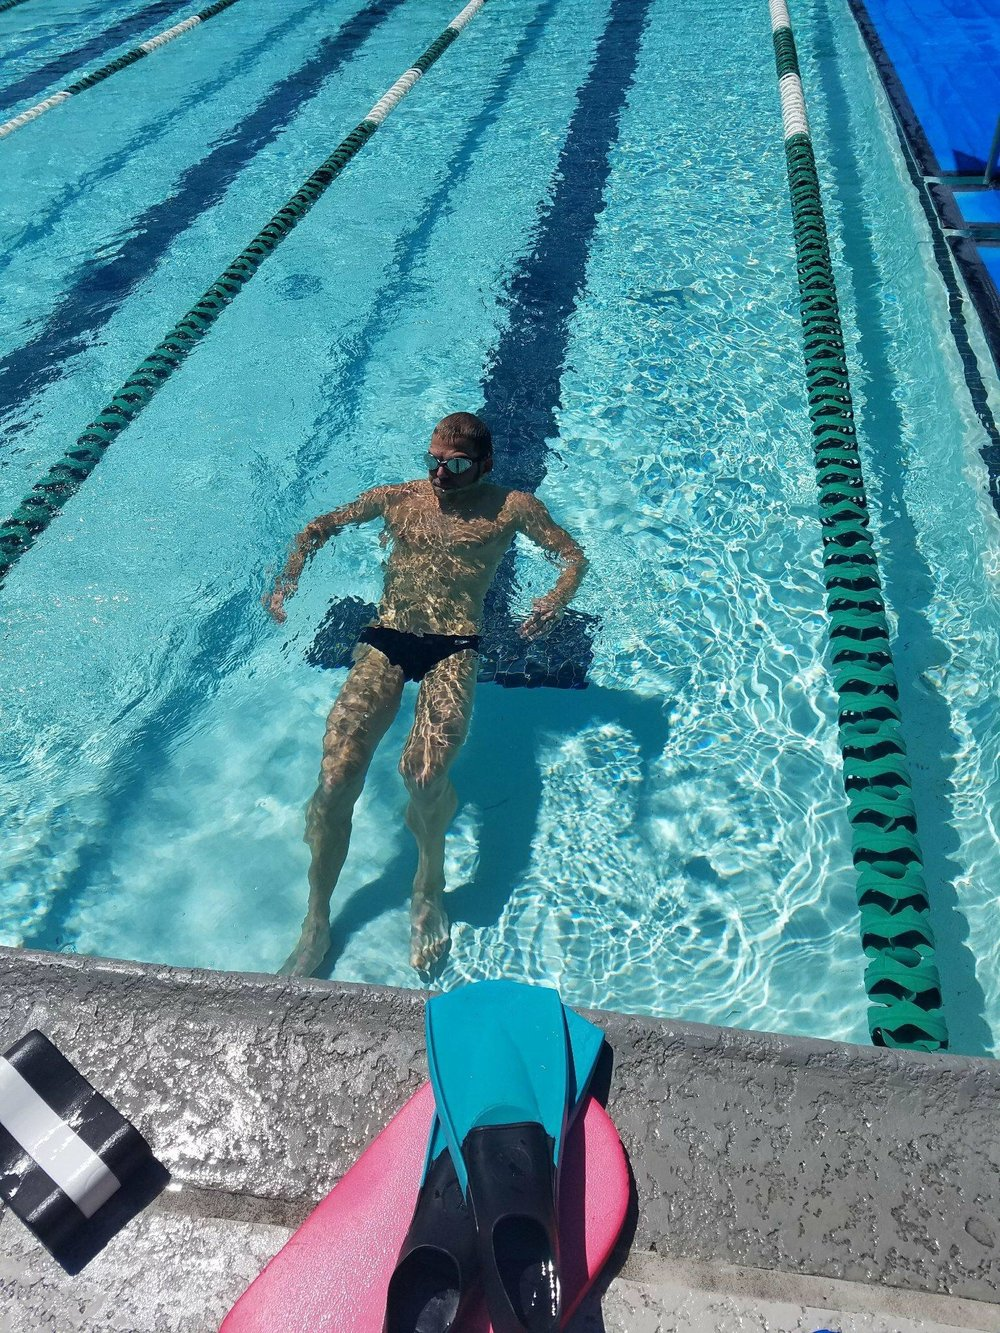 Enjoying some easier swims before race day.